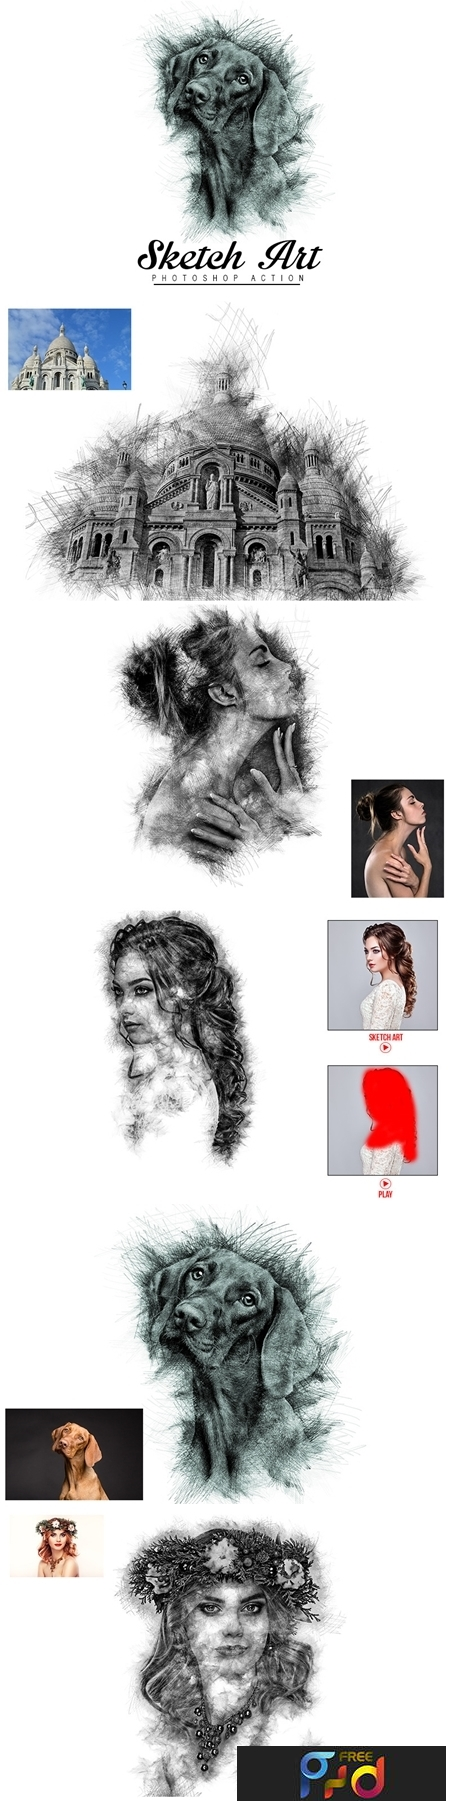 Sketch Art Photoshop Actions 1